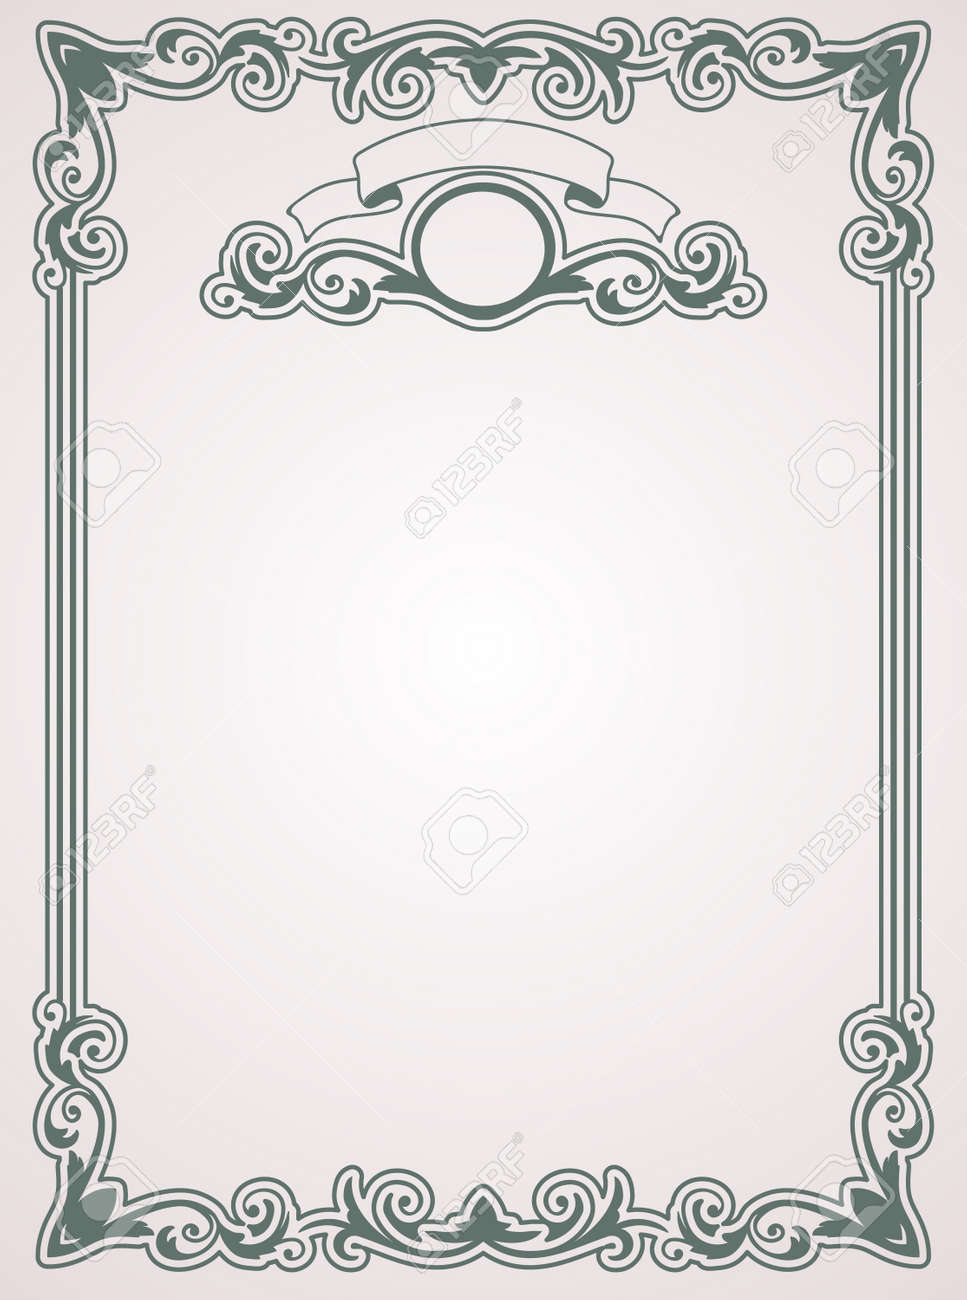 Certificate template vintage background royalty free cliparts certificate template vintage background stock vector 15990386 yelopaper Gallery